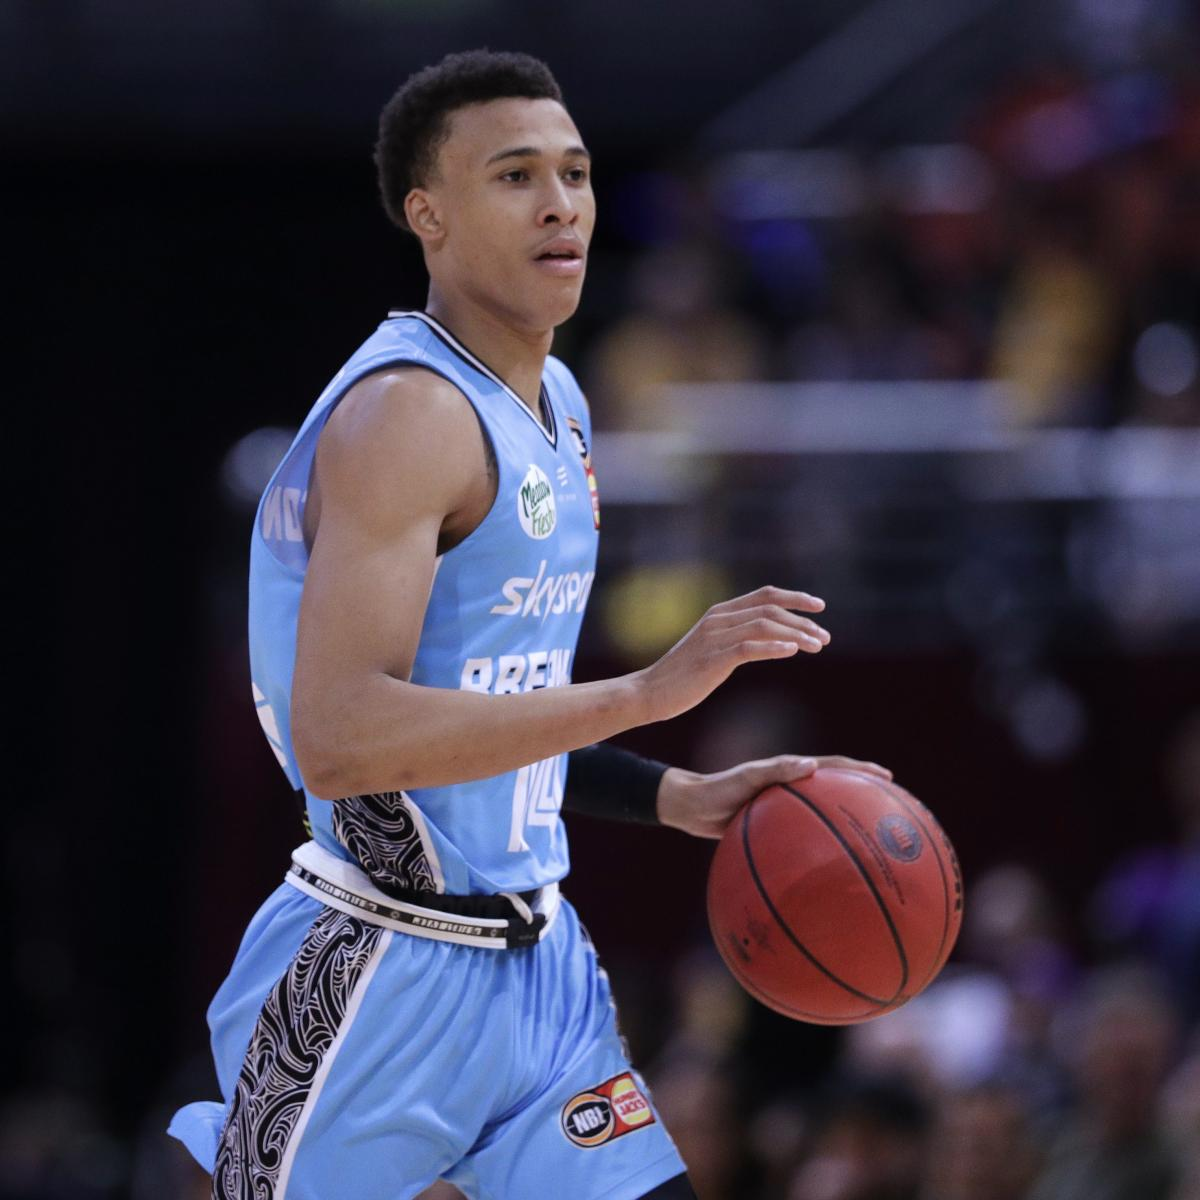 2020 nba mock draft predictions for prospects whose